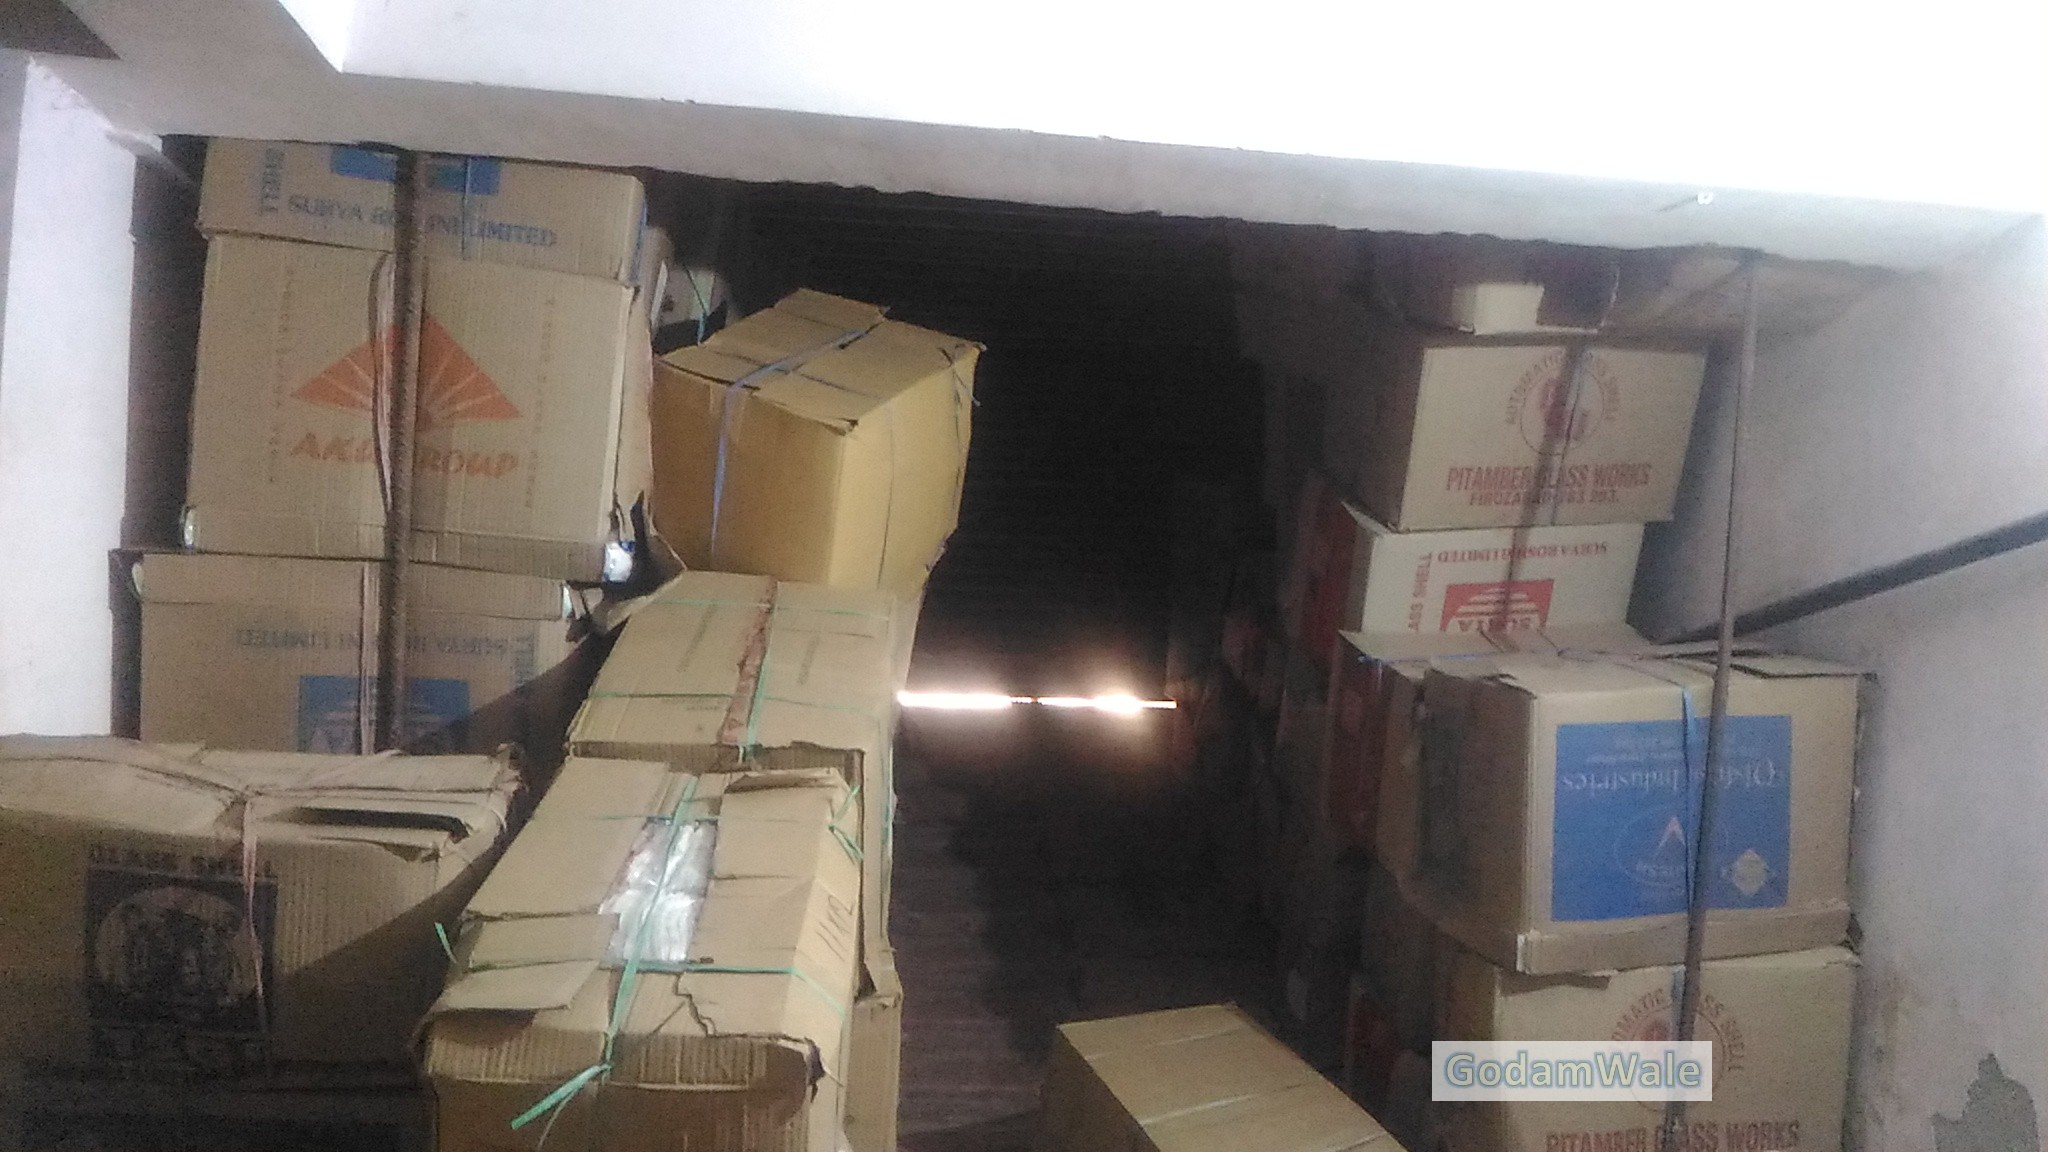 Warehouse Space for lease, Godown, Cold Storage for rent in